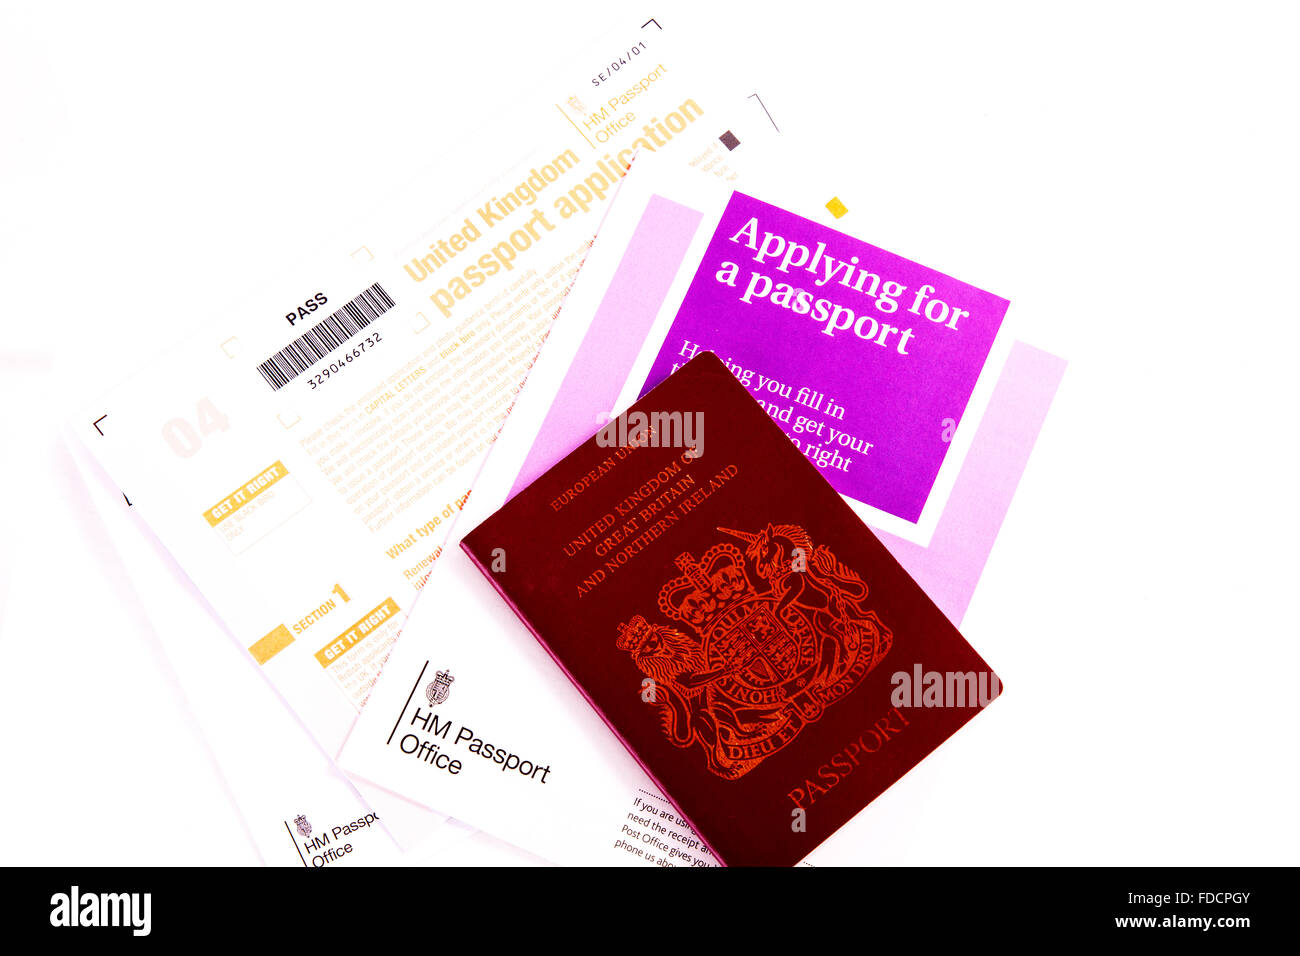 Passport application form UK applying for new passport office travel permit cut out cutout white background isolated - Stock Image